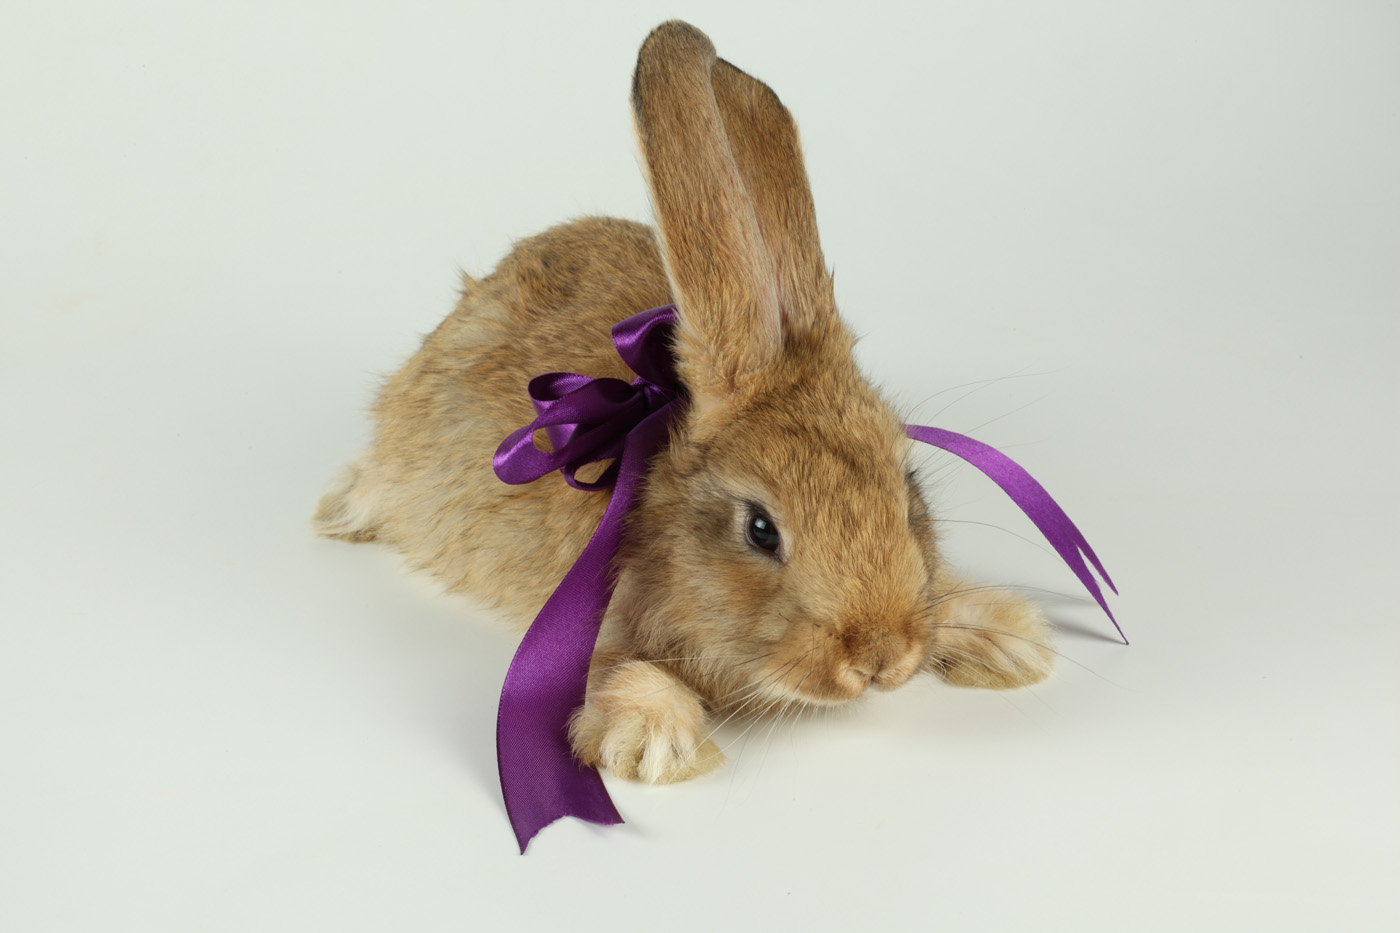 Cute rabbit with Ribbon 21084